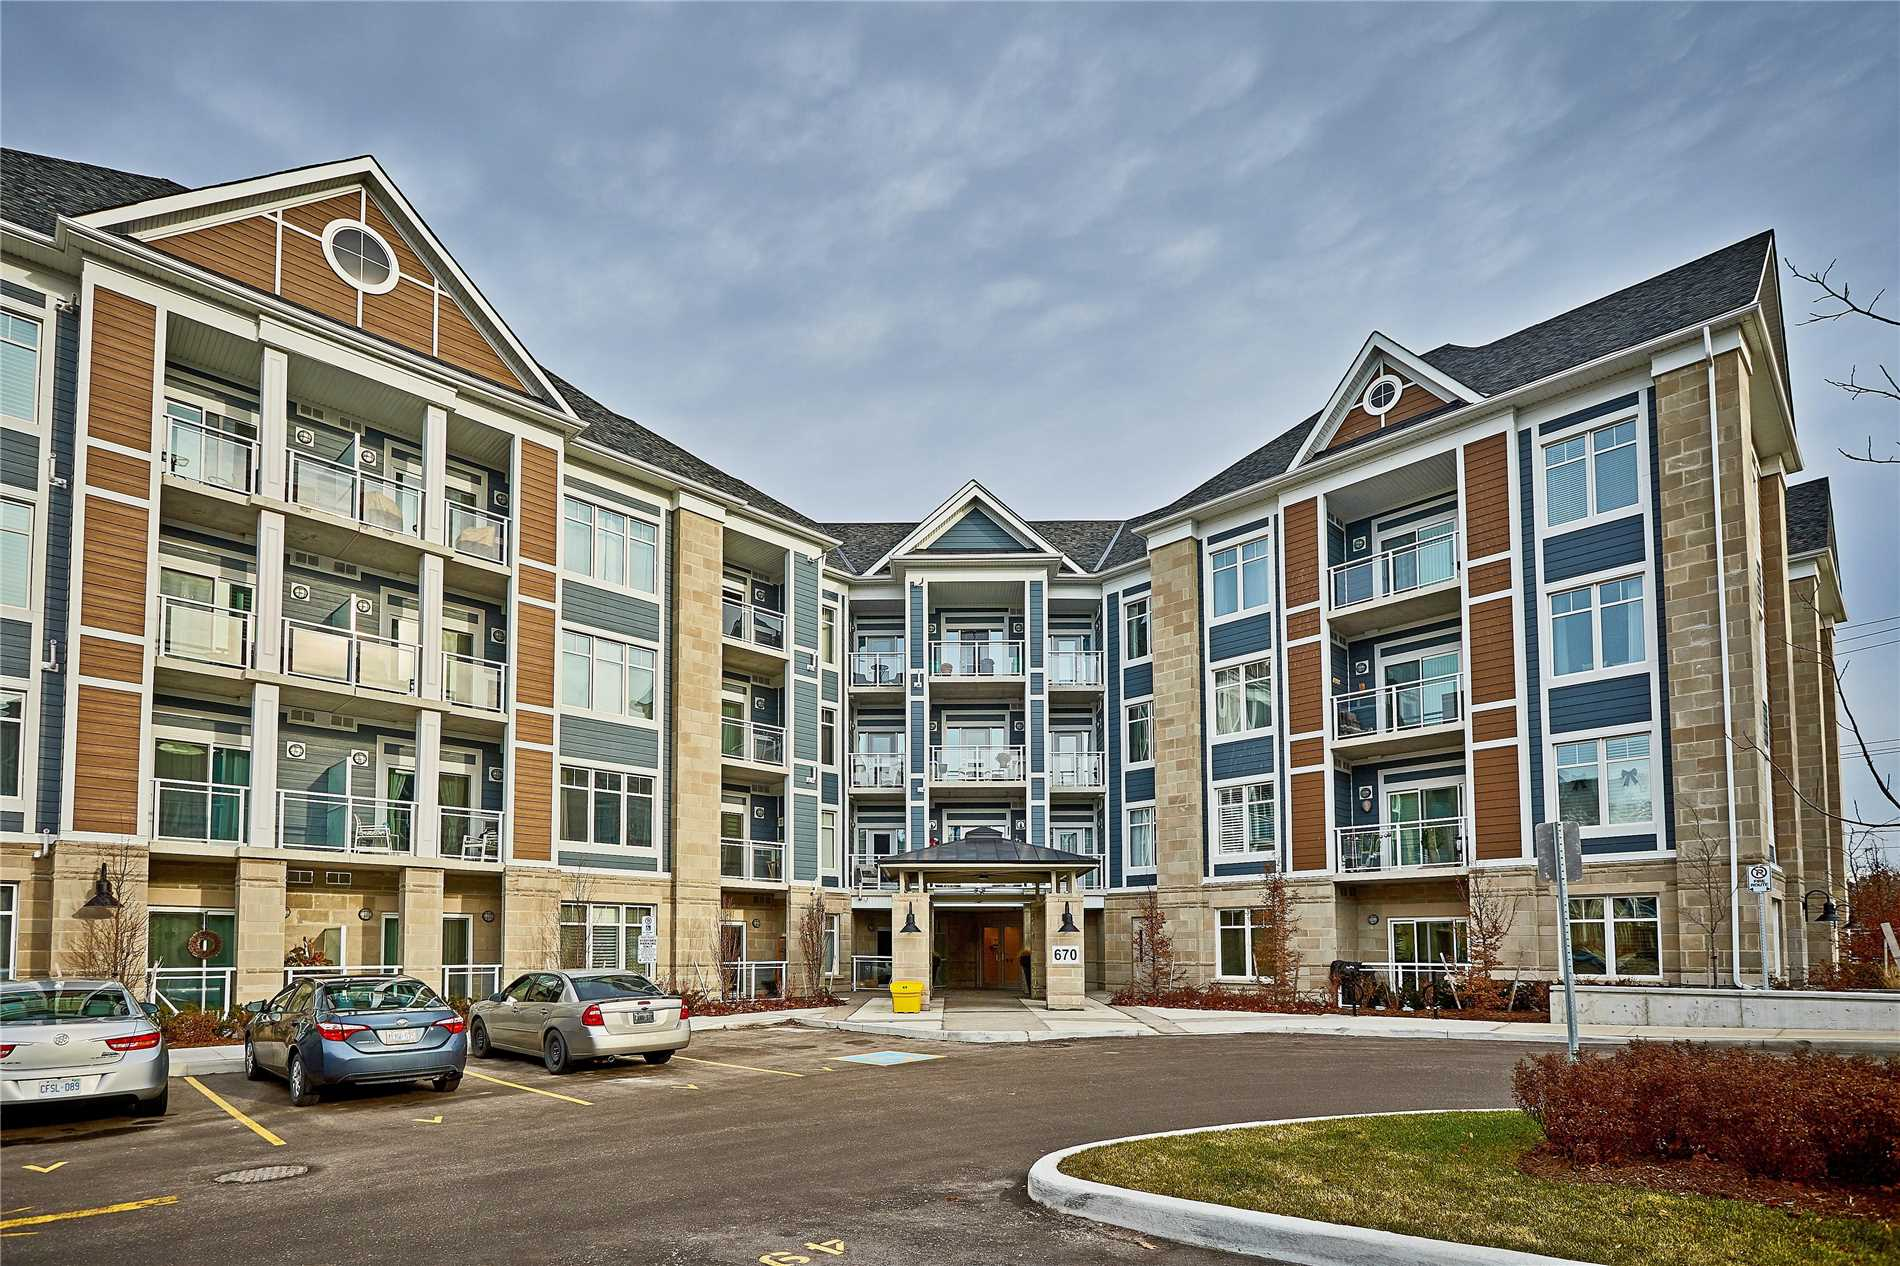 1 Bdrm + Den Harbourside Condo in Whitby Shores